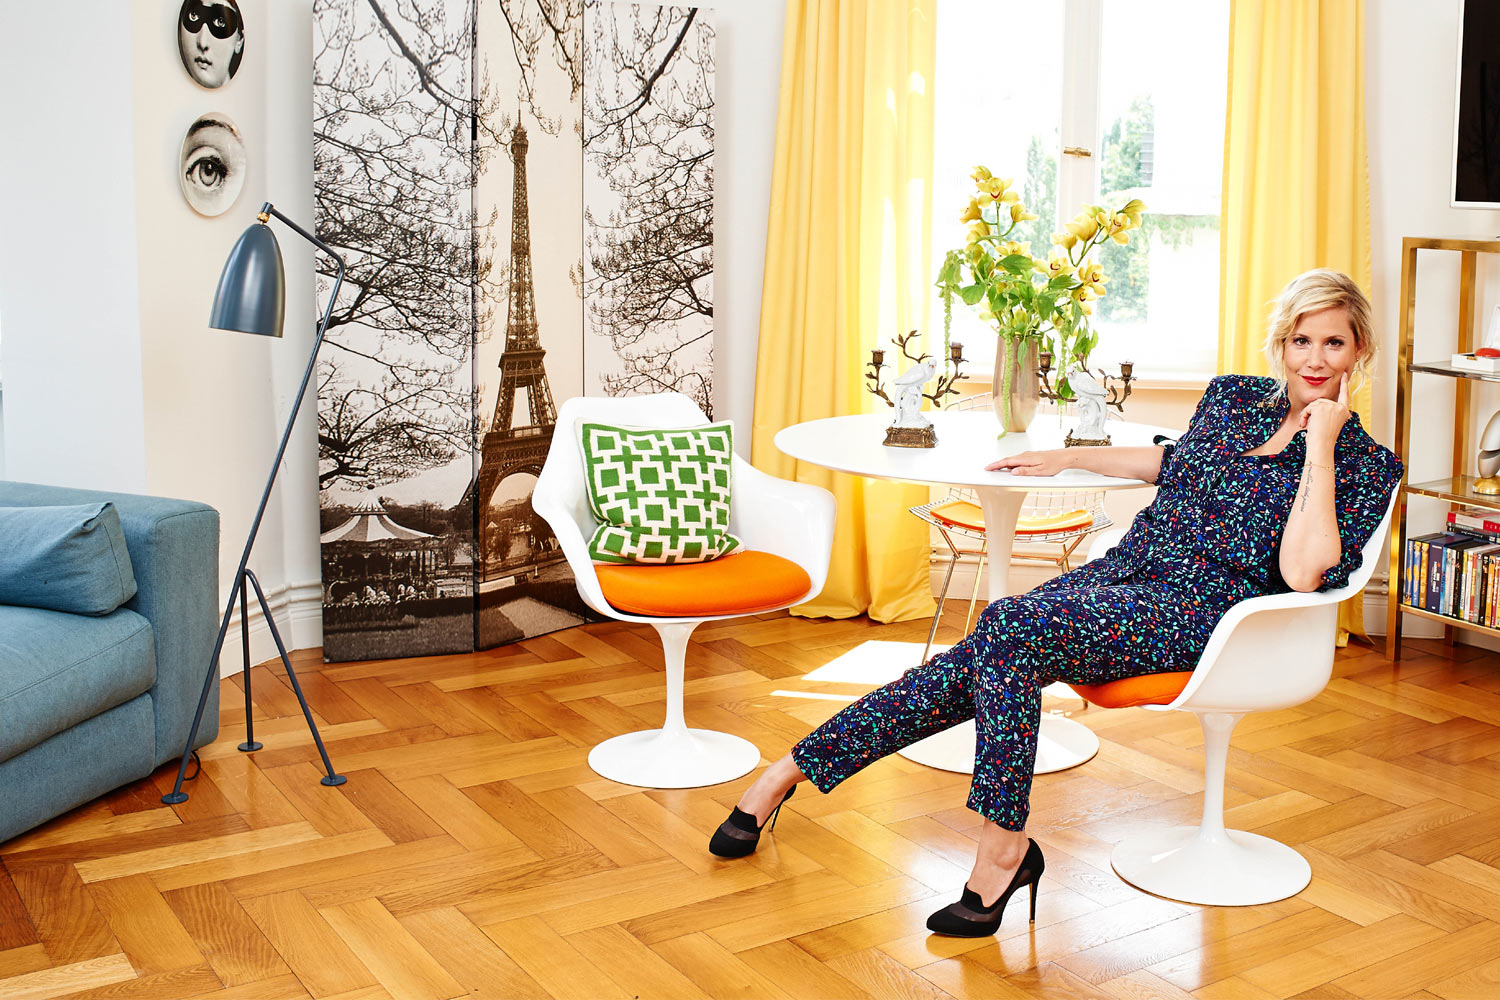 ASTRID M OBERT PHOTOGRAPHY PRESTENTS - Eccentric Style by Anika Decker